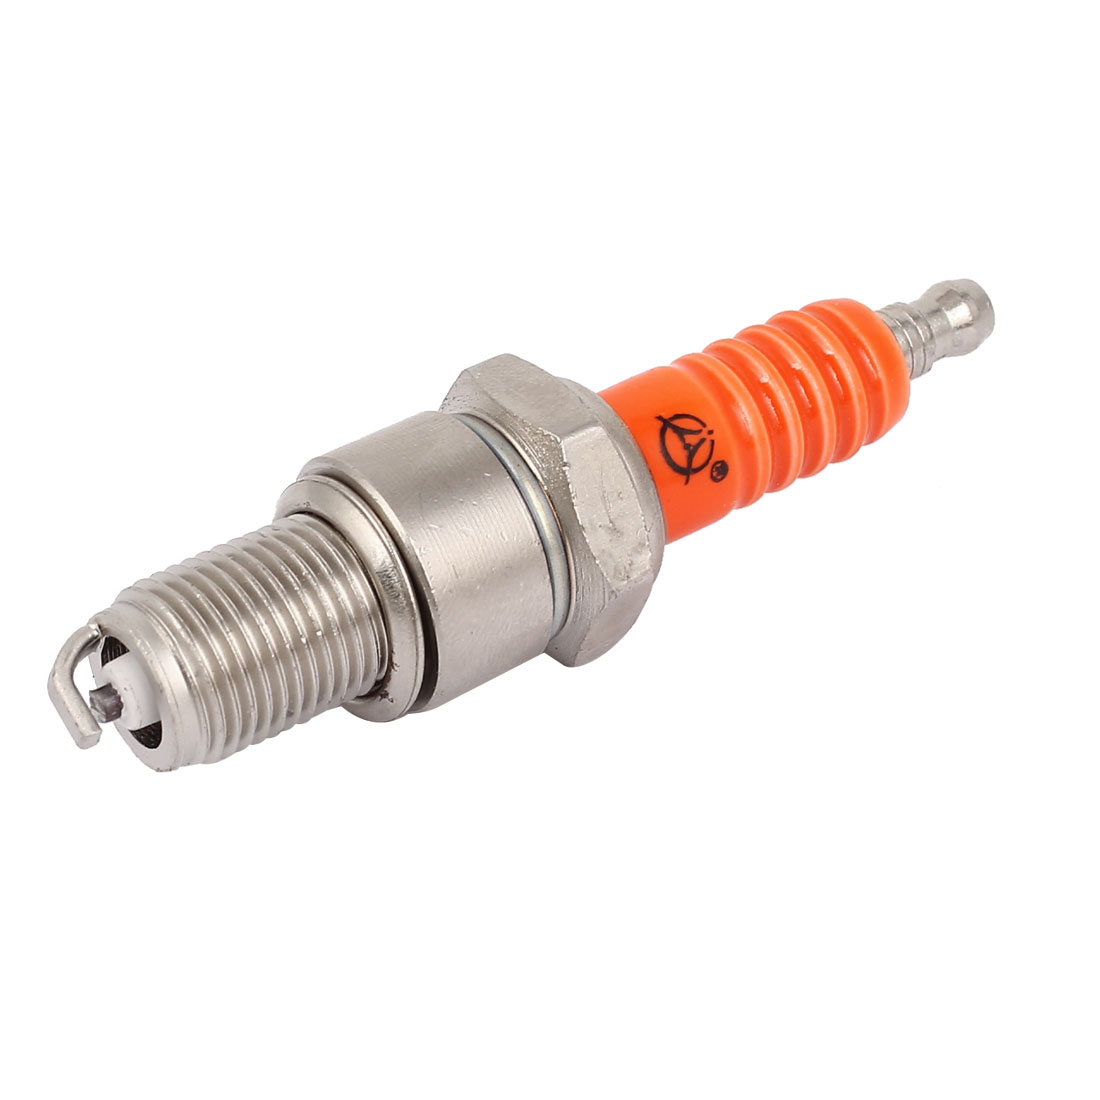 F5TC Orangered Spark Plug for Cars Choose Your Part Number & Quantity